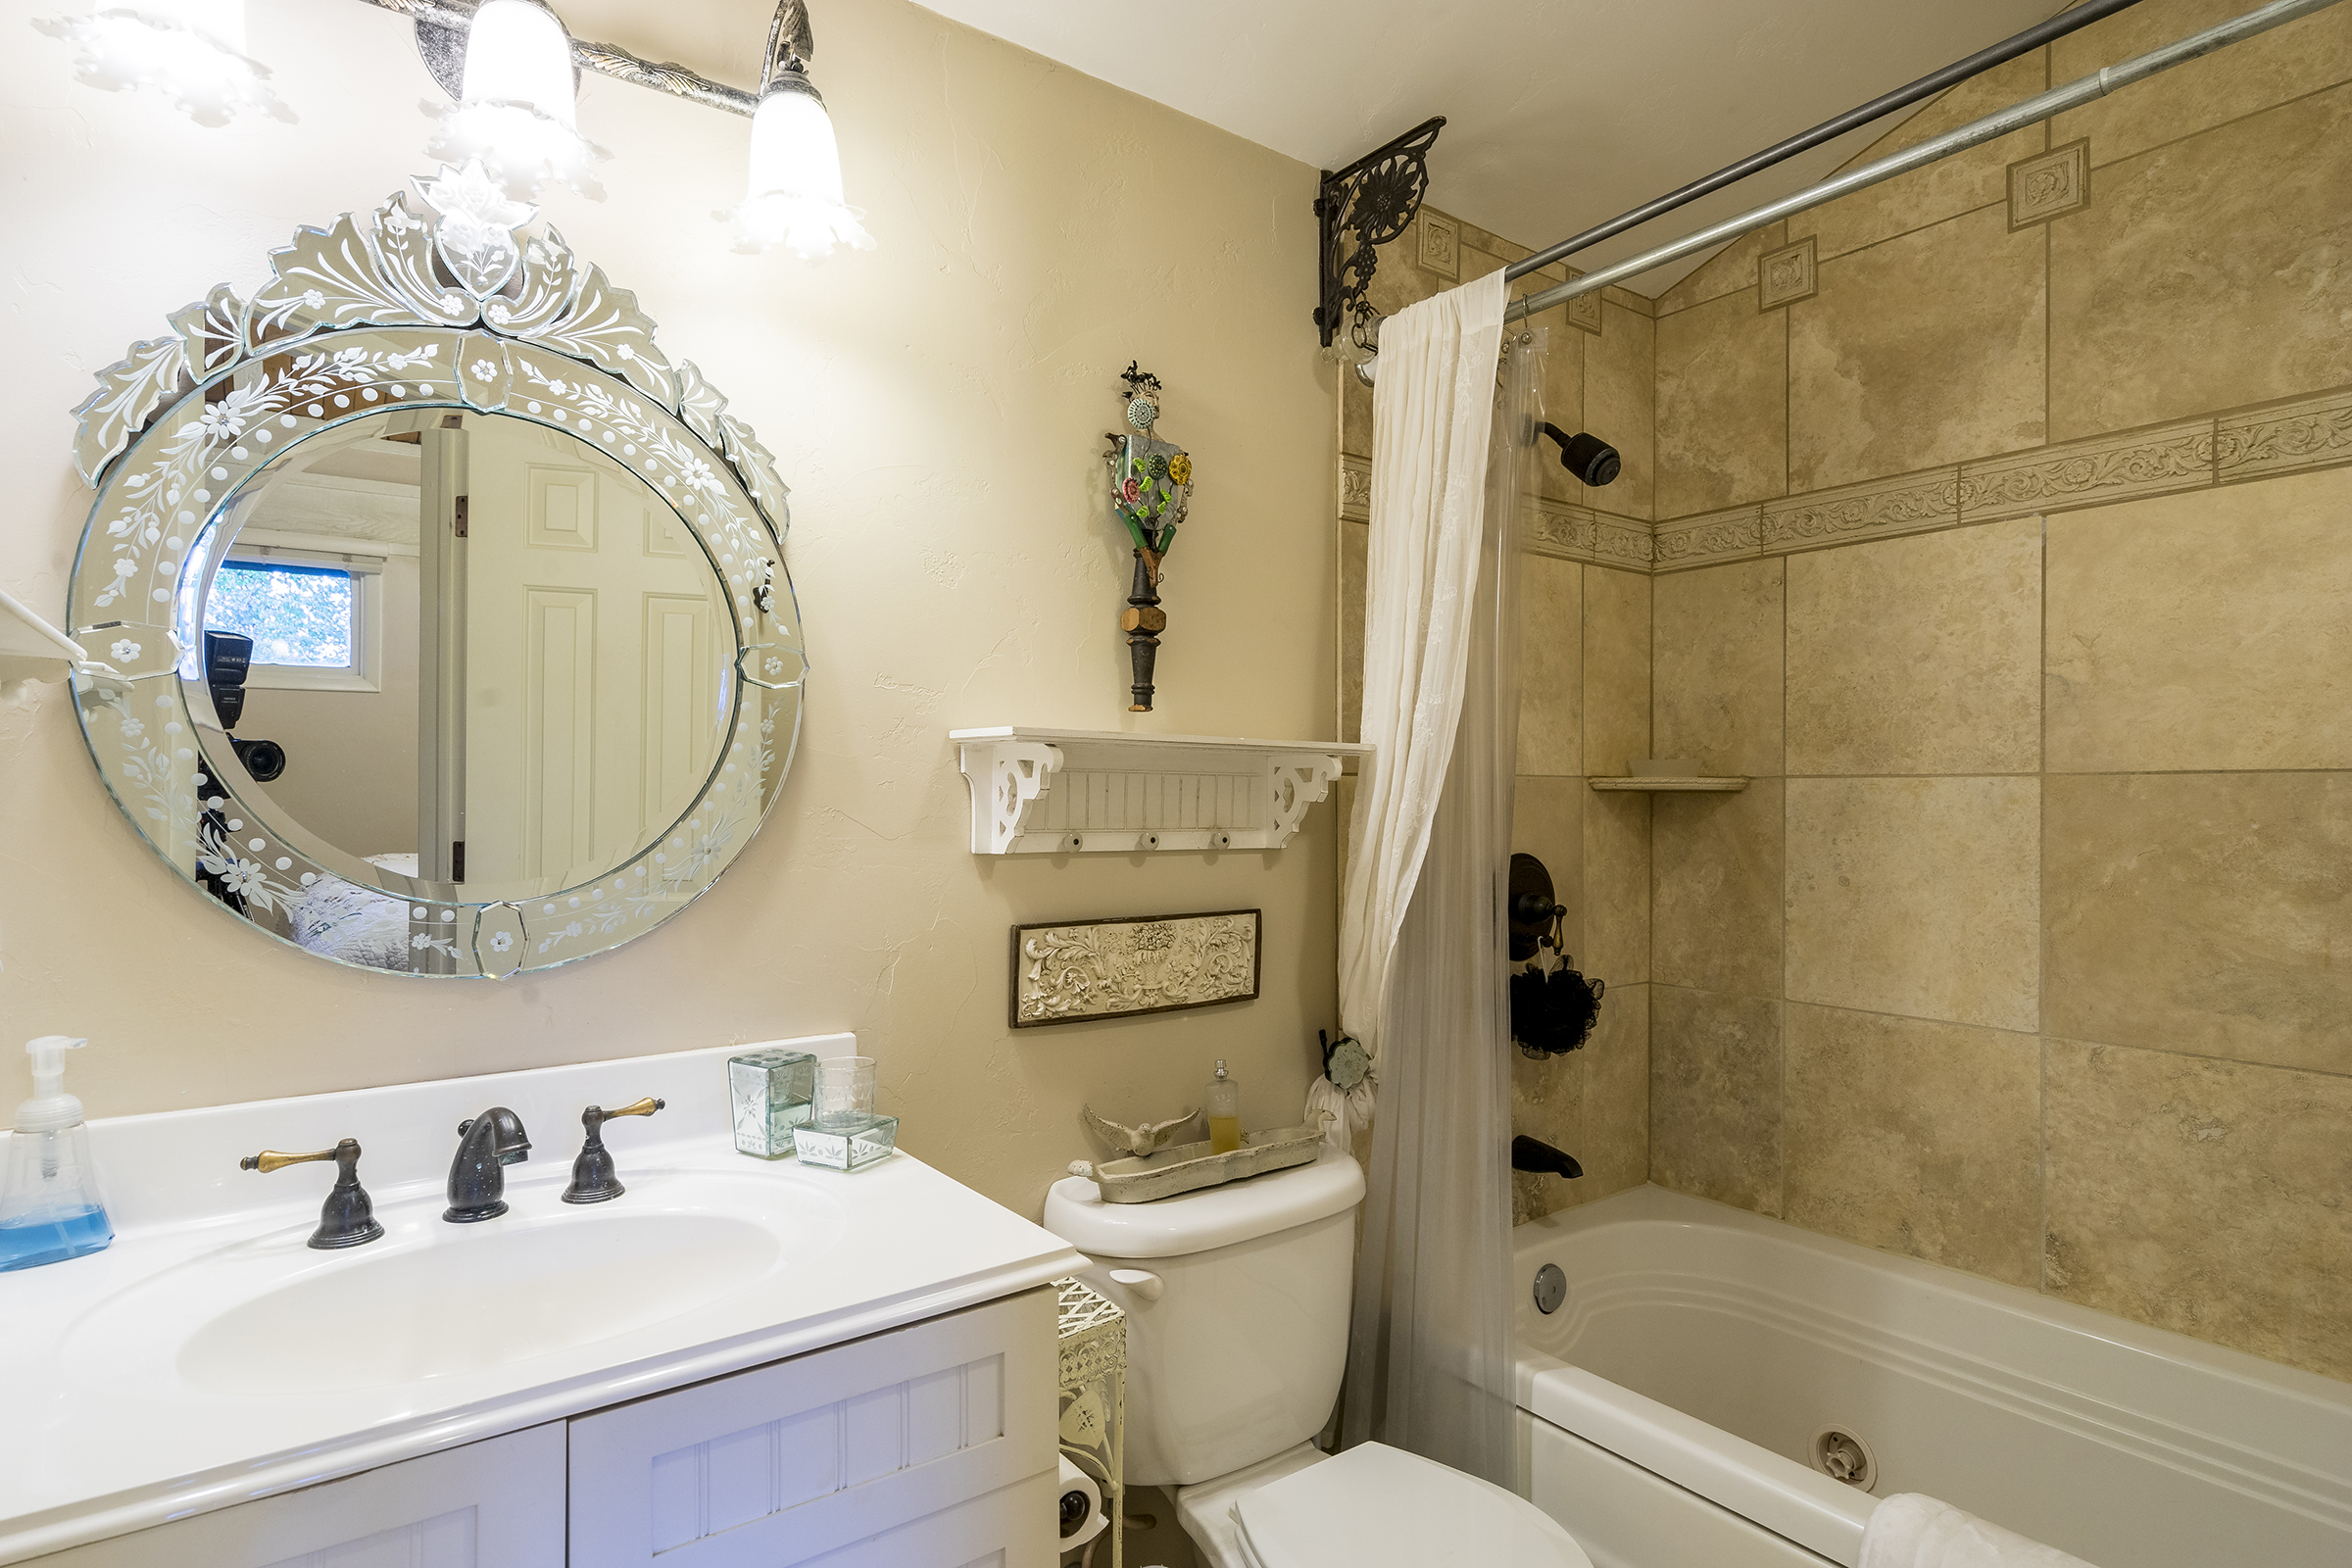 Herbage A5 3 Bedroom 3 Bath Townhome Discount Lift